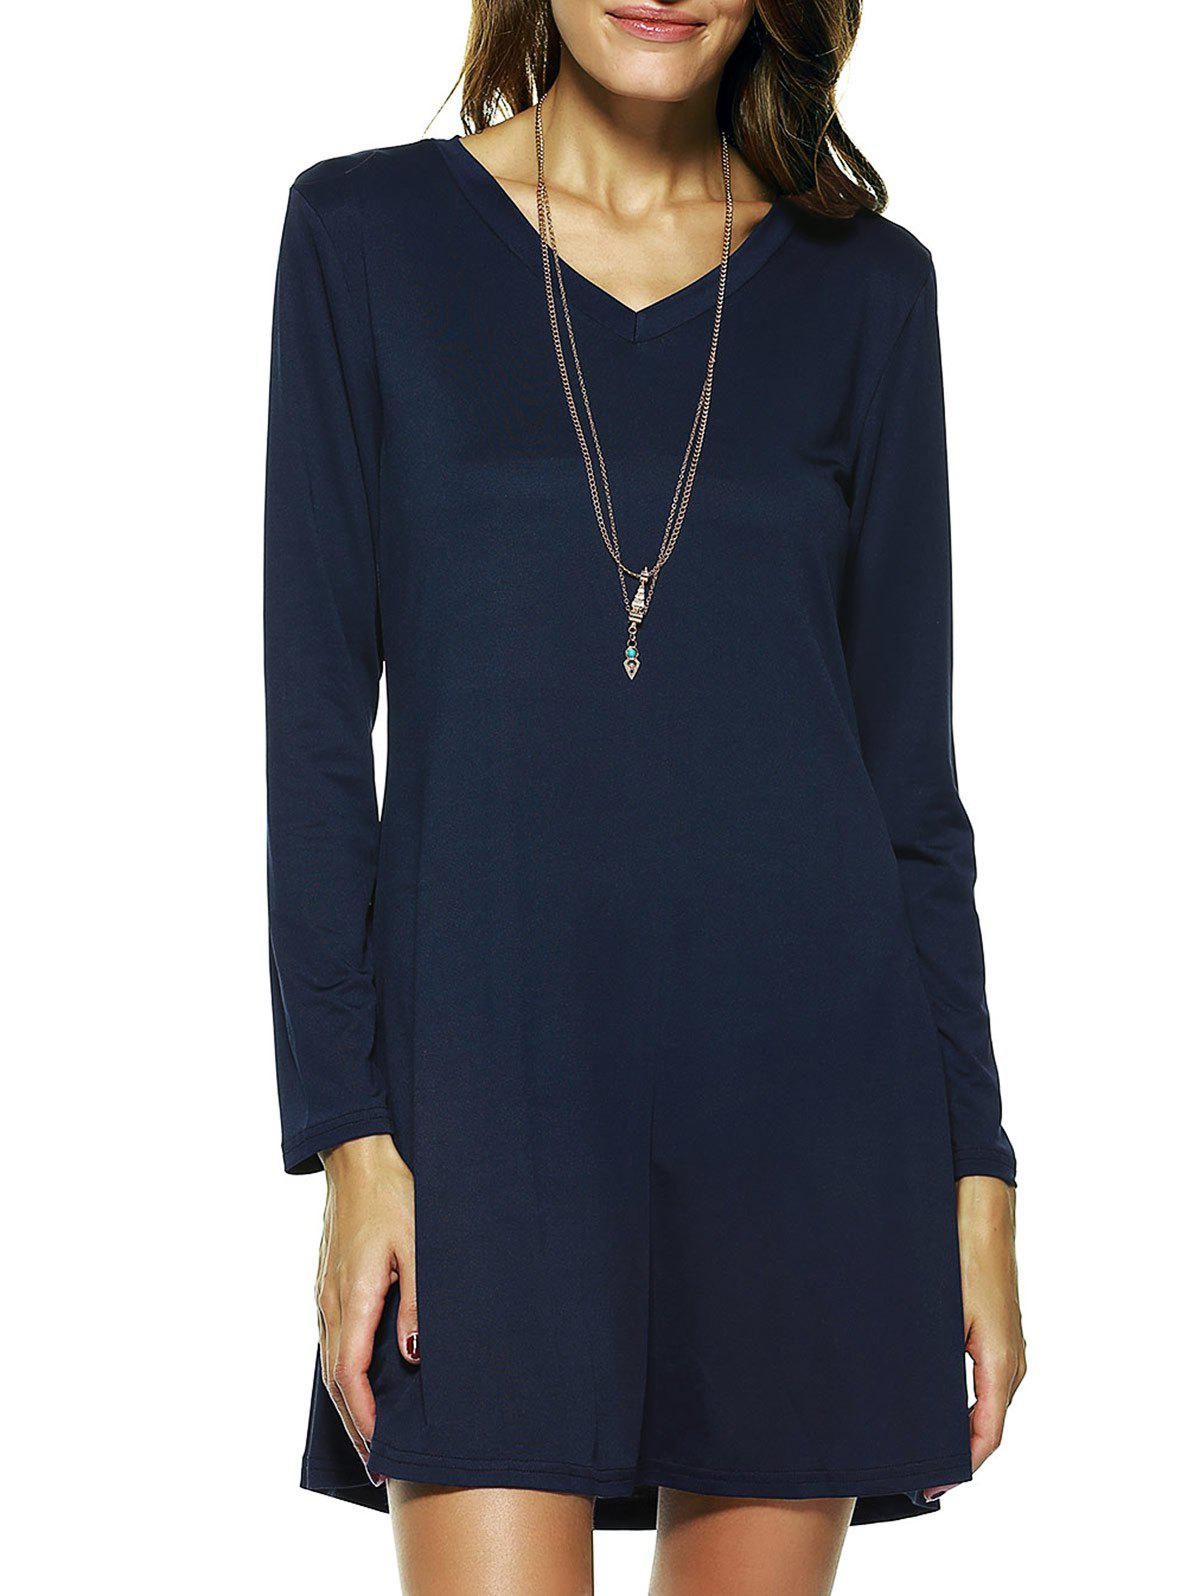 Solid Color Long Sleeve Flare Dress - PURPLISH BLUE XL